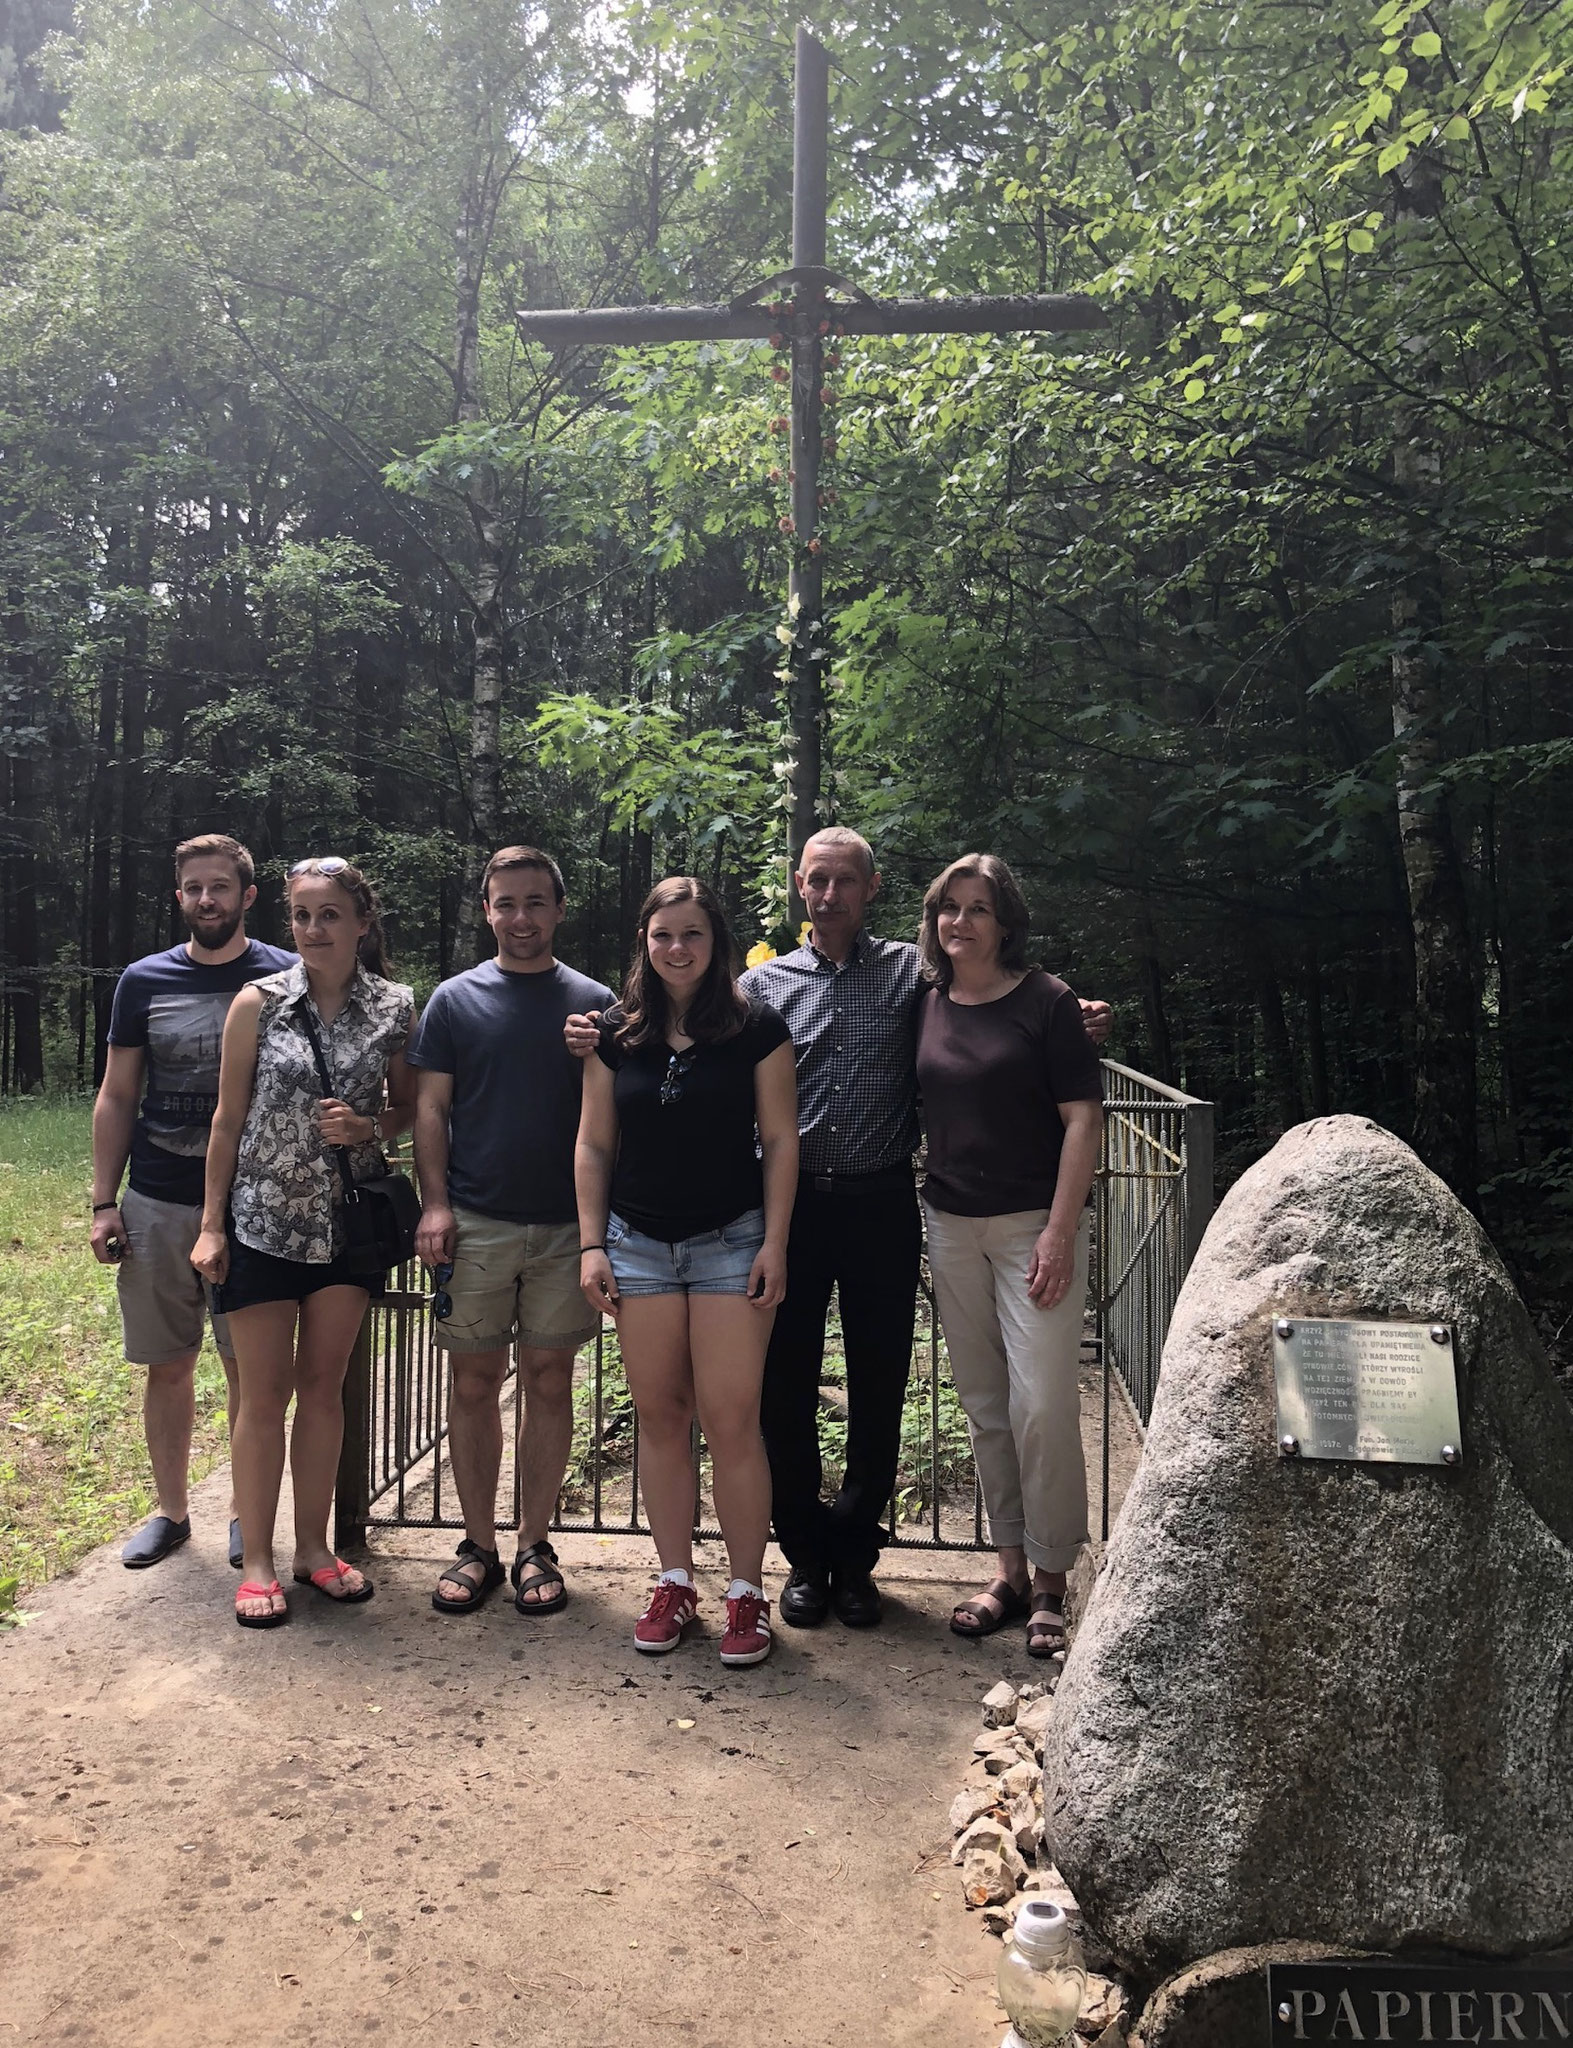 BACK to 2018:stone monument to Papierna, where Walter & Julia lived and where Paul Bogden was born; Kamil Bogdan (Zygmunt's son), Paulina (Krawczyk) Filipowicz,Trevan, Sara, Zygmunt Bogdan,Cyndi